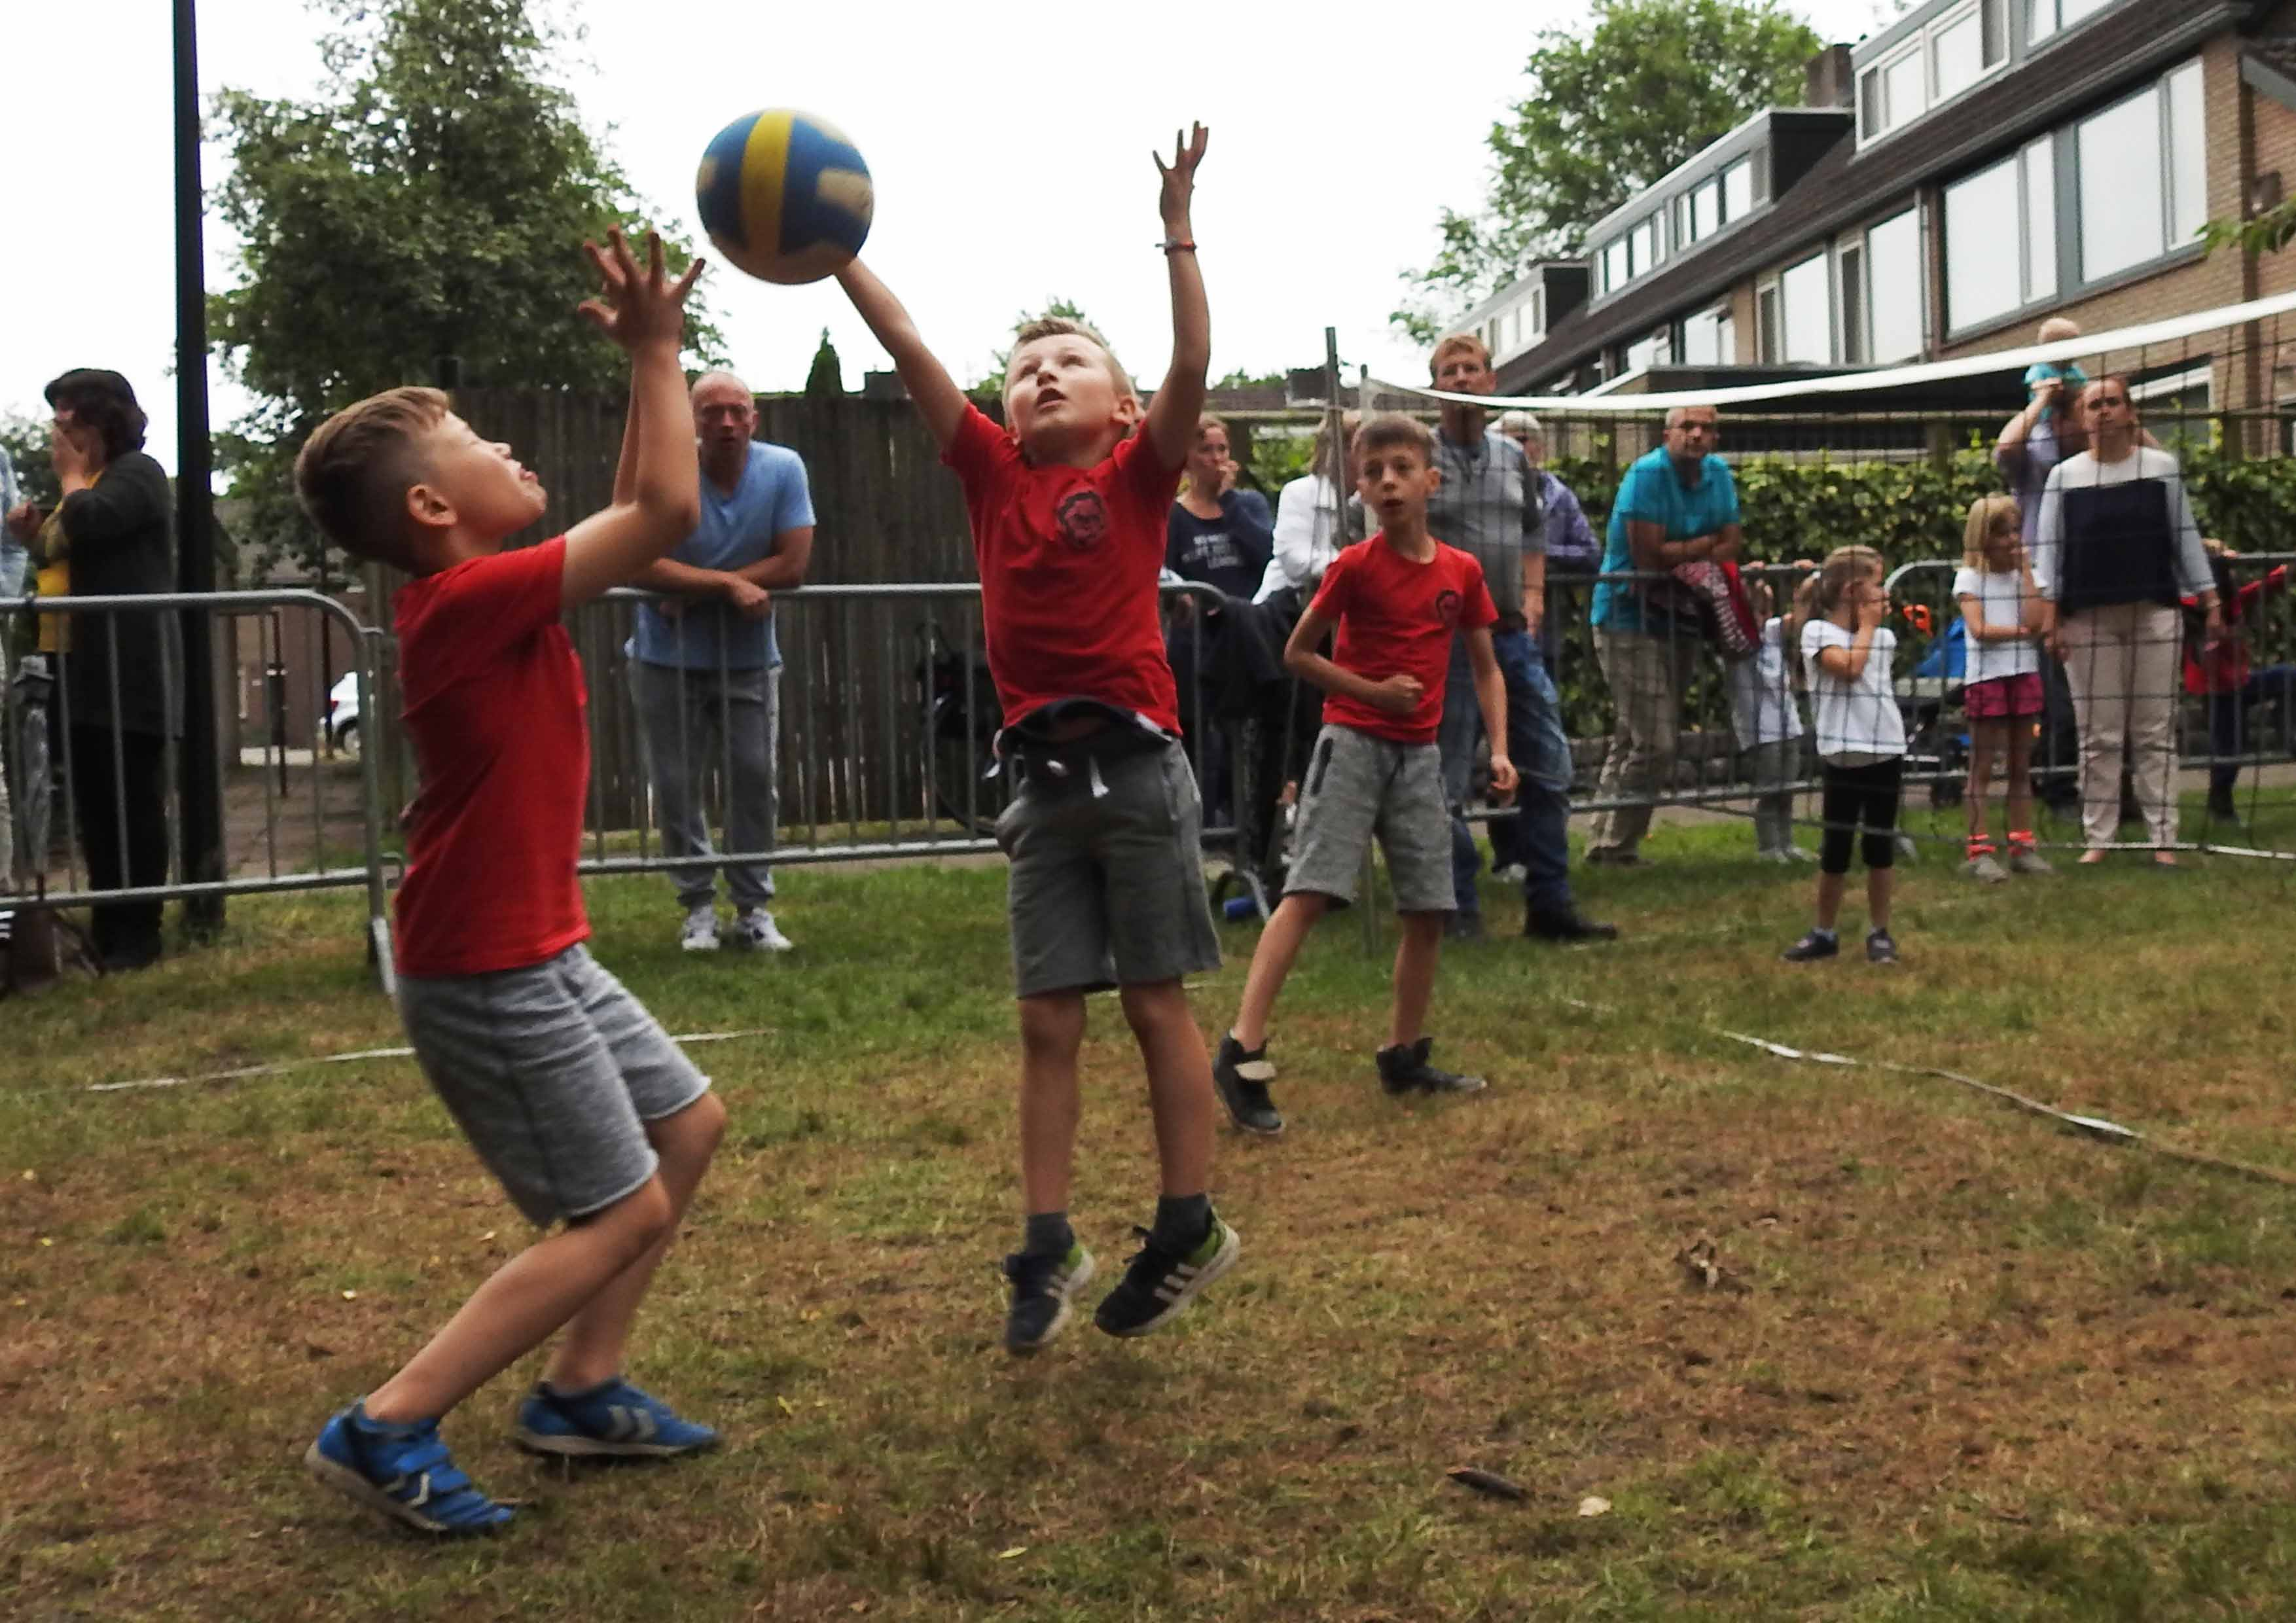 2017-06-29_BB_Straatvolleybal (14)